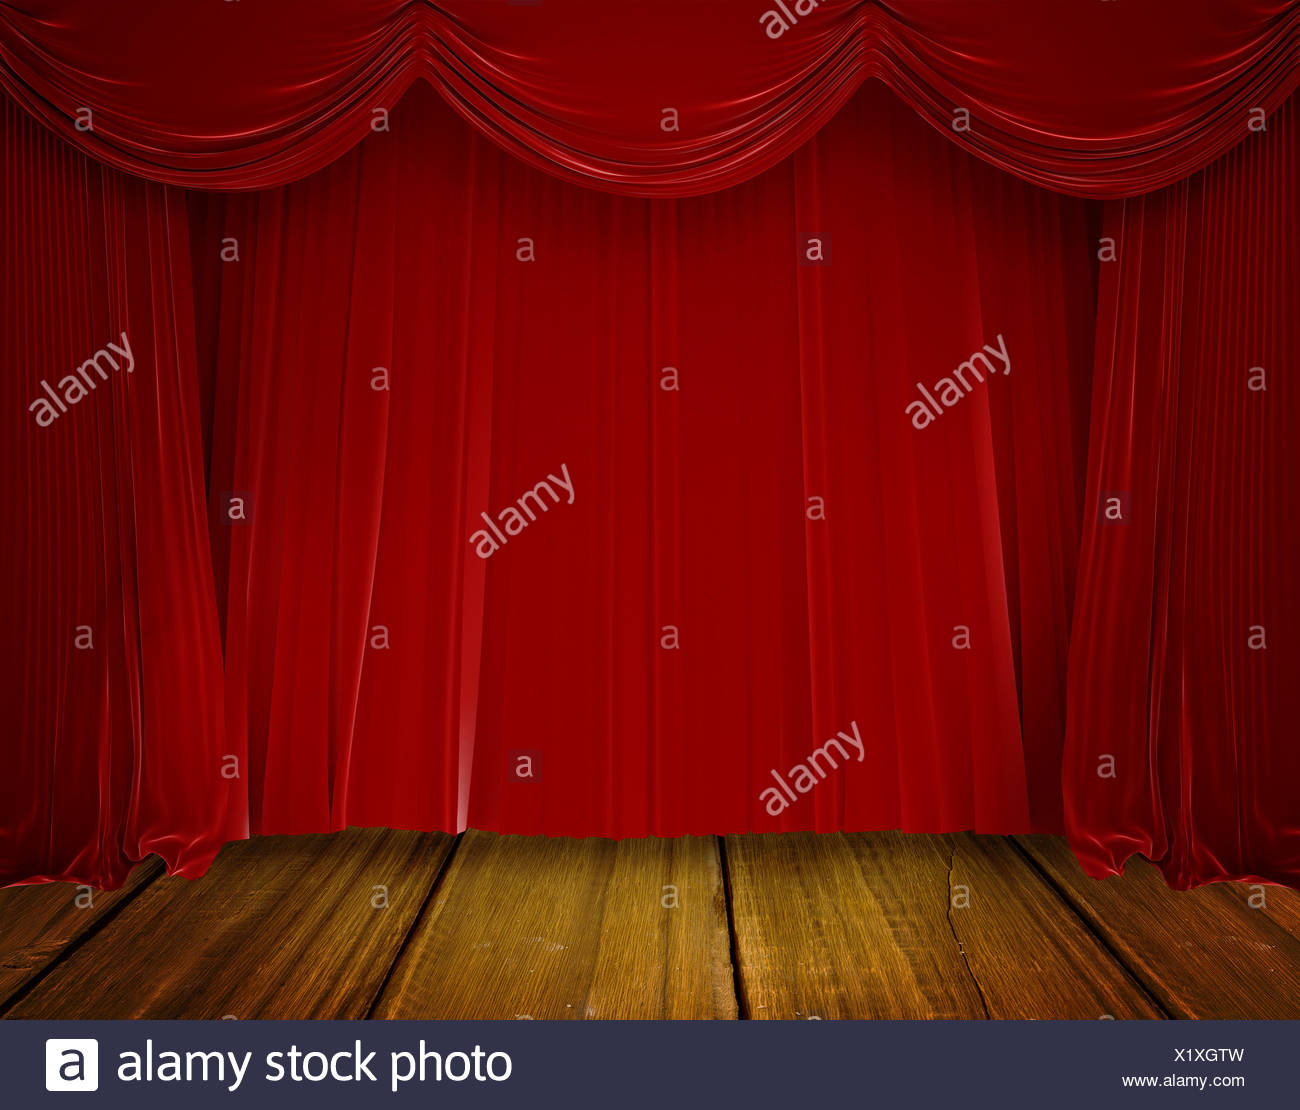 Red curtain pulling back - Stock Image